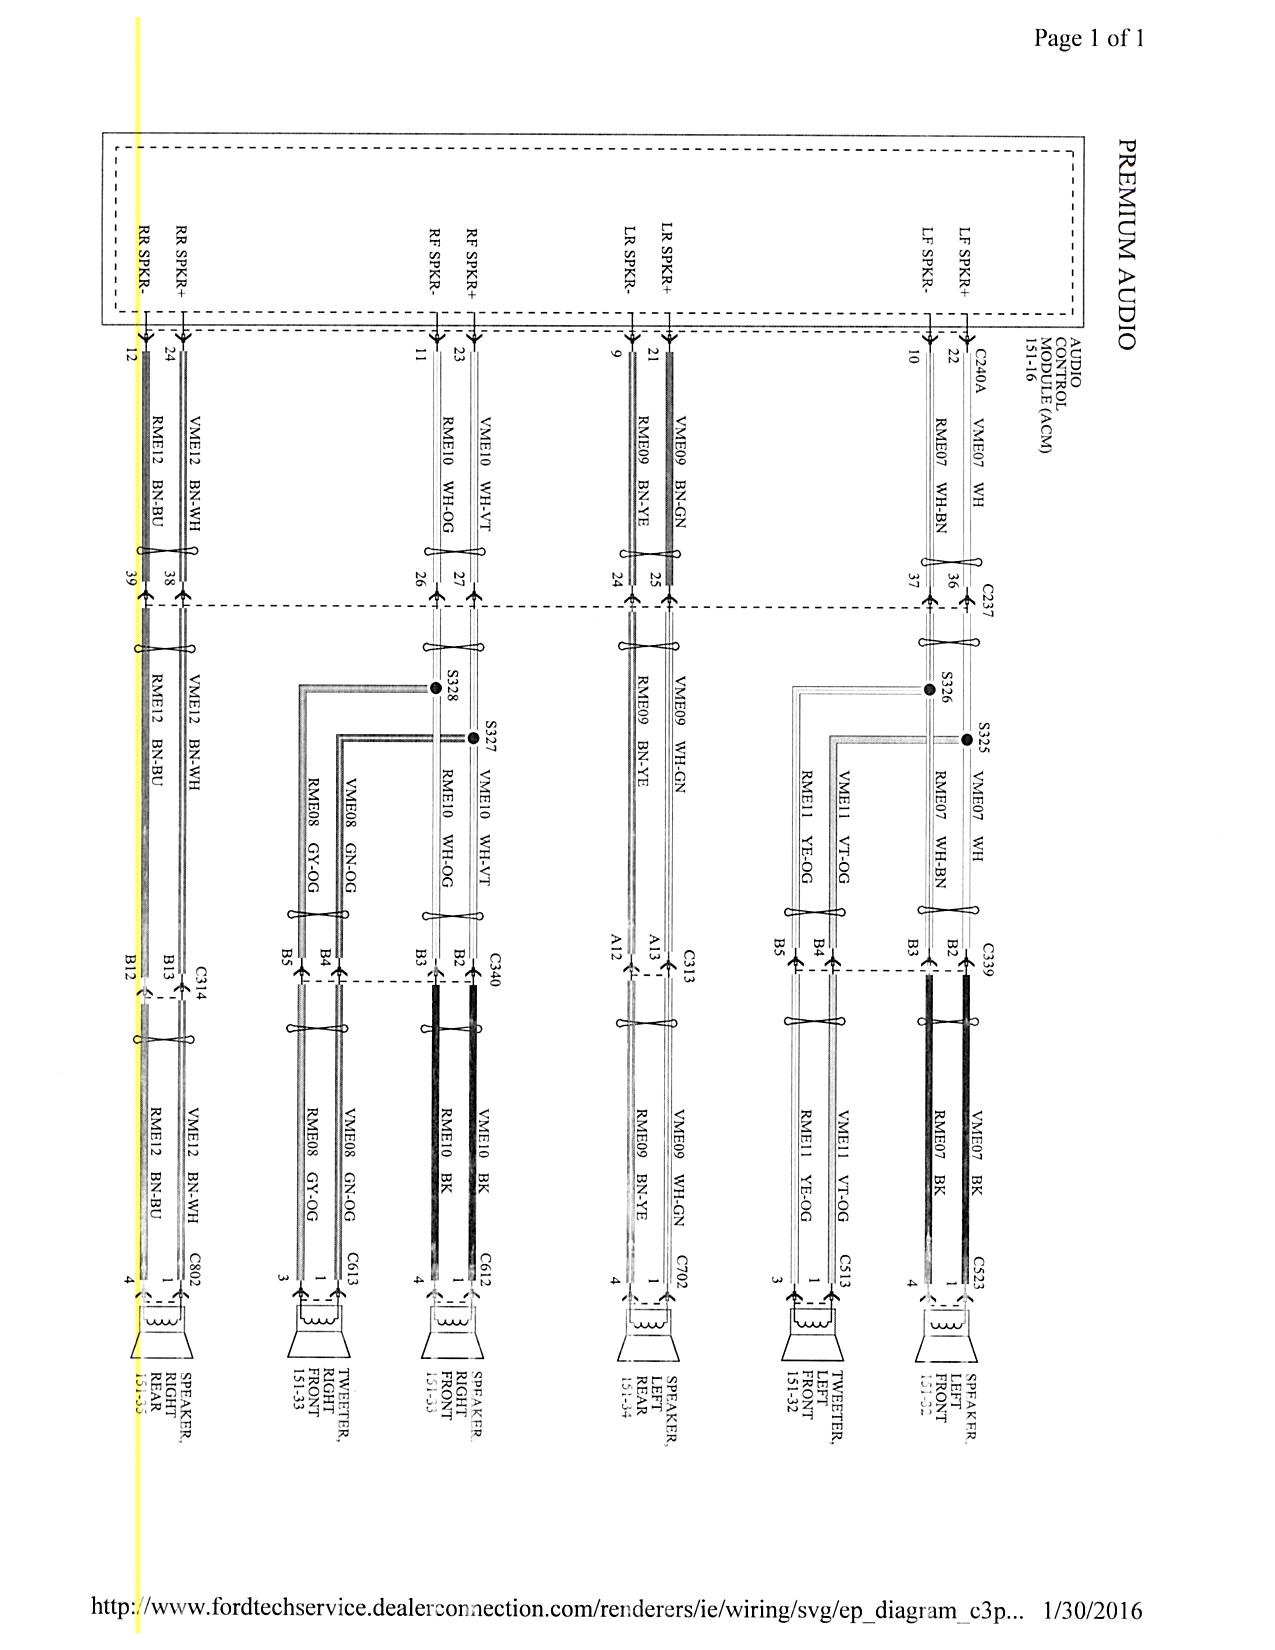 Ford Fleet 2008 Pto Wiring Diagram